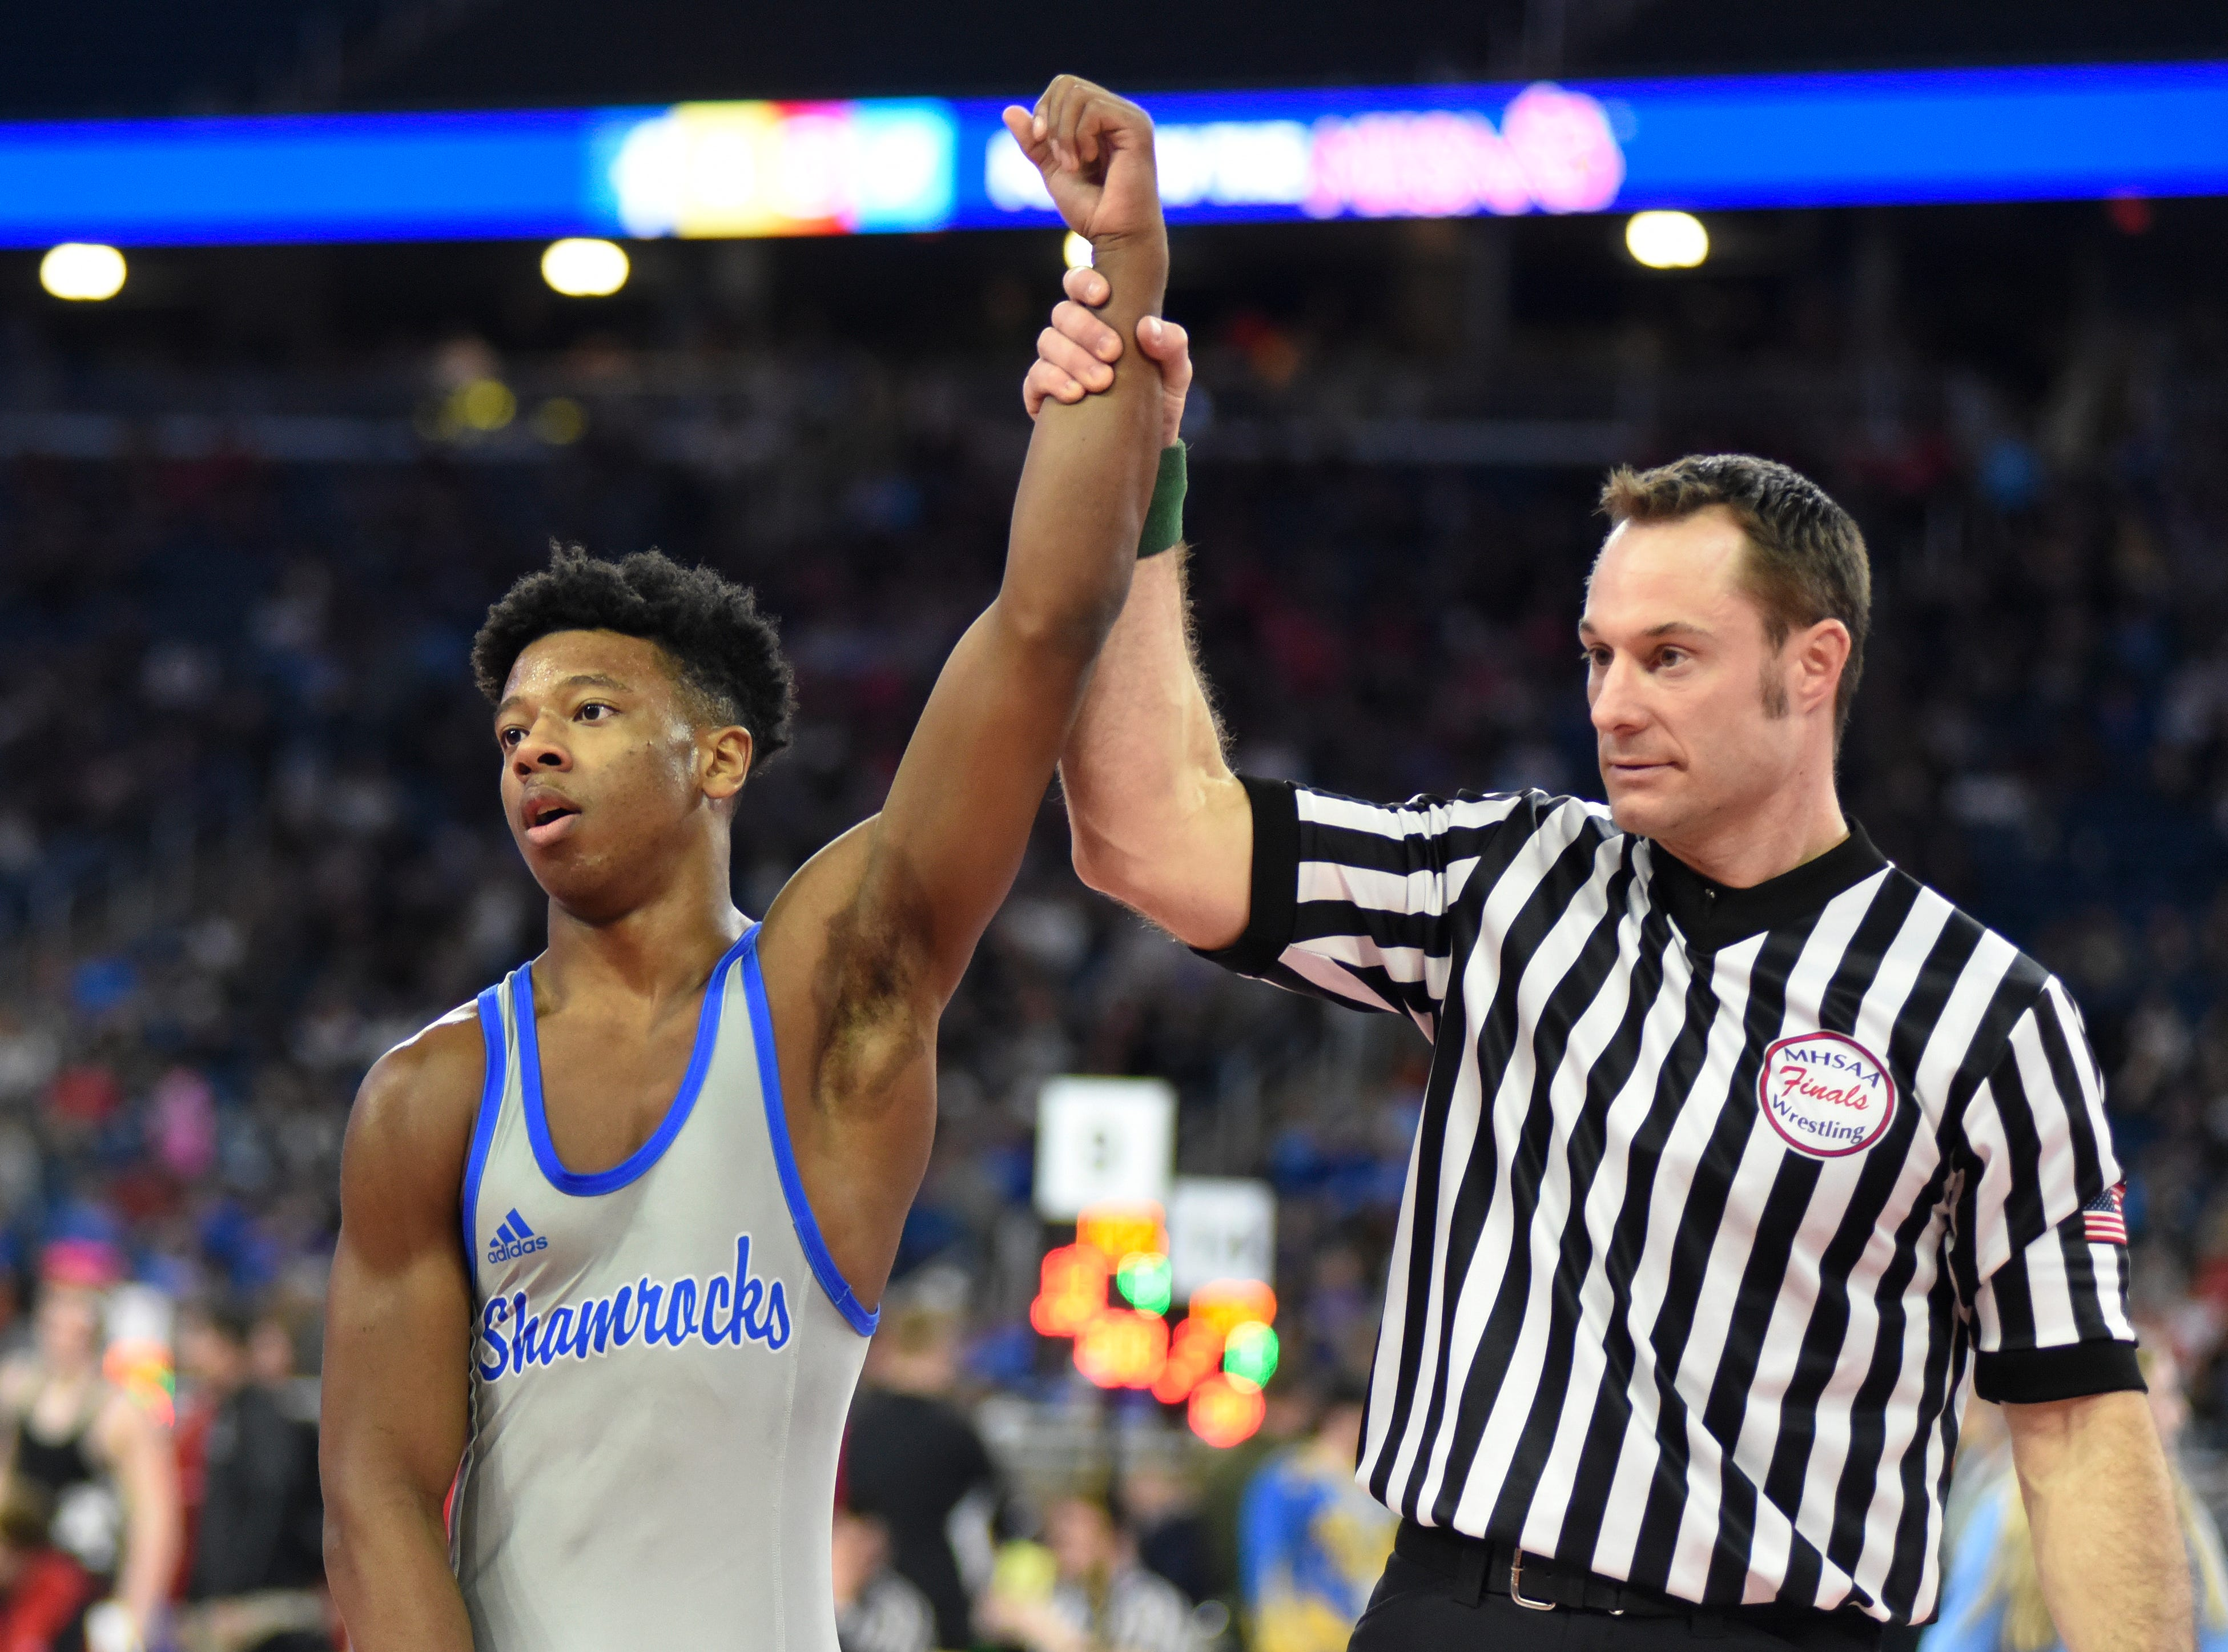 Kevon Davenport of Detroit Catholic Central won by pin over Jack Richardson of Rockford at 145 pounds to advance to the state semifinals match.